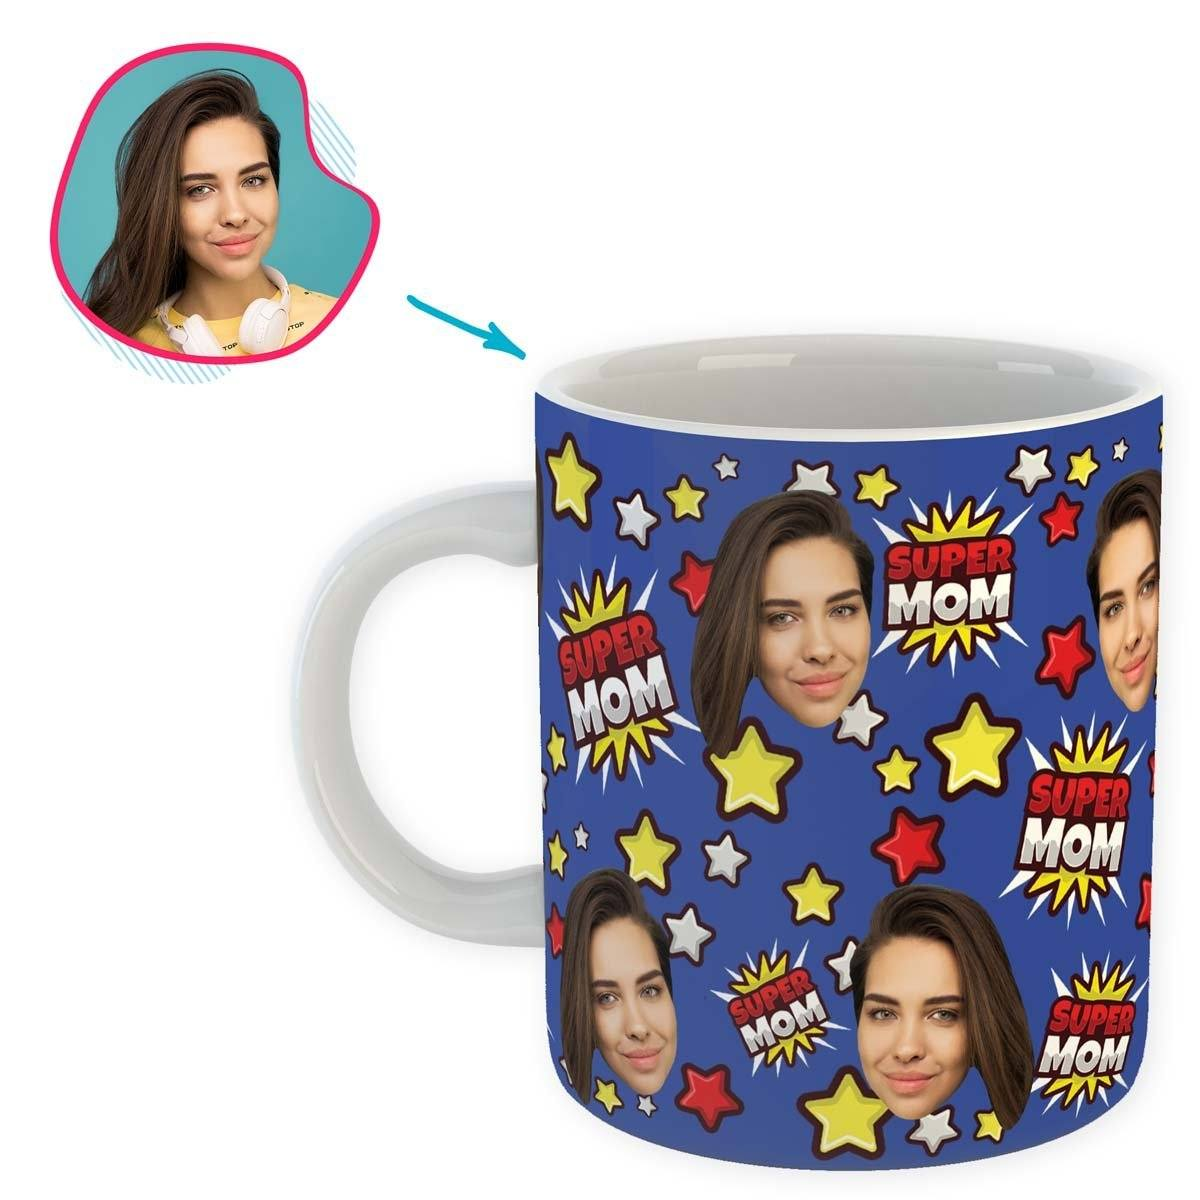 darkblue Super Mom mug personalized with photo of face printed on it